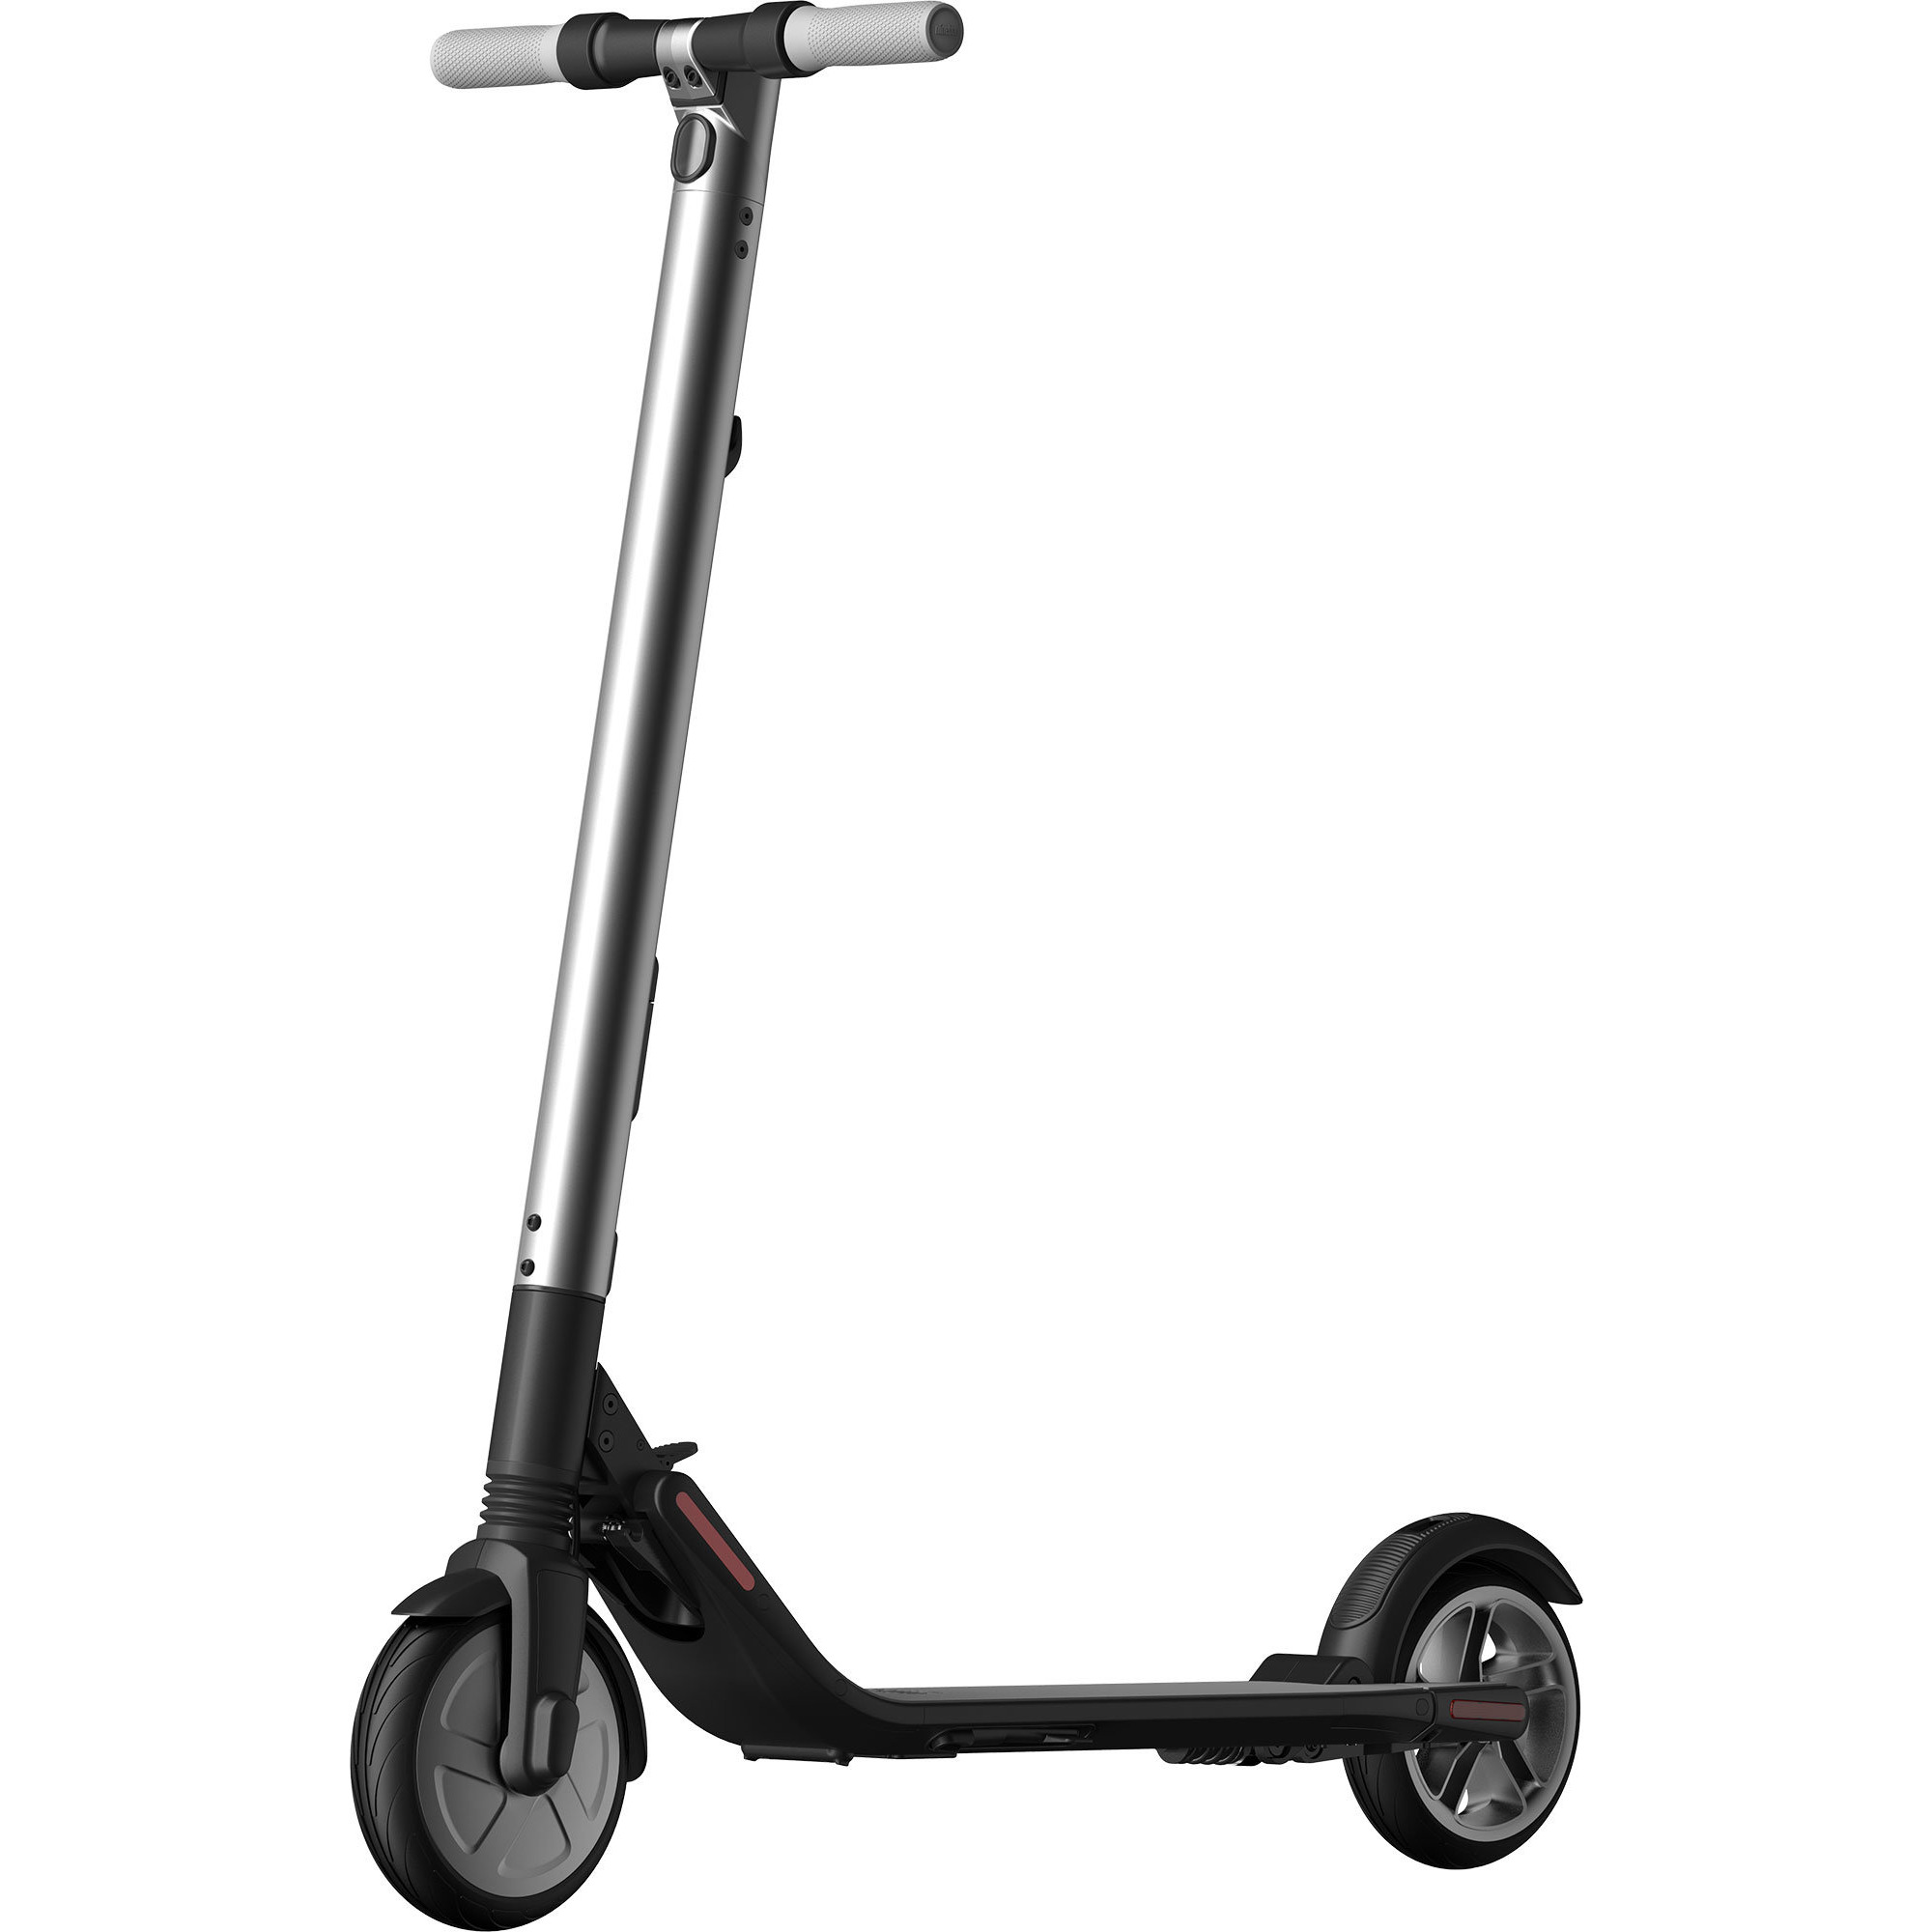 kickscooter es2 fra ninebot by segway gratis levering. Black Bedroom Furniture Sets. Home Design Ideas